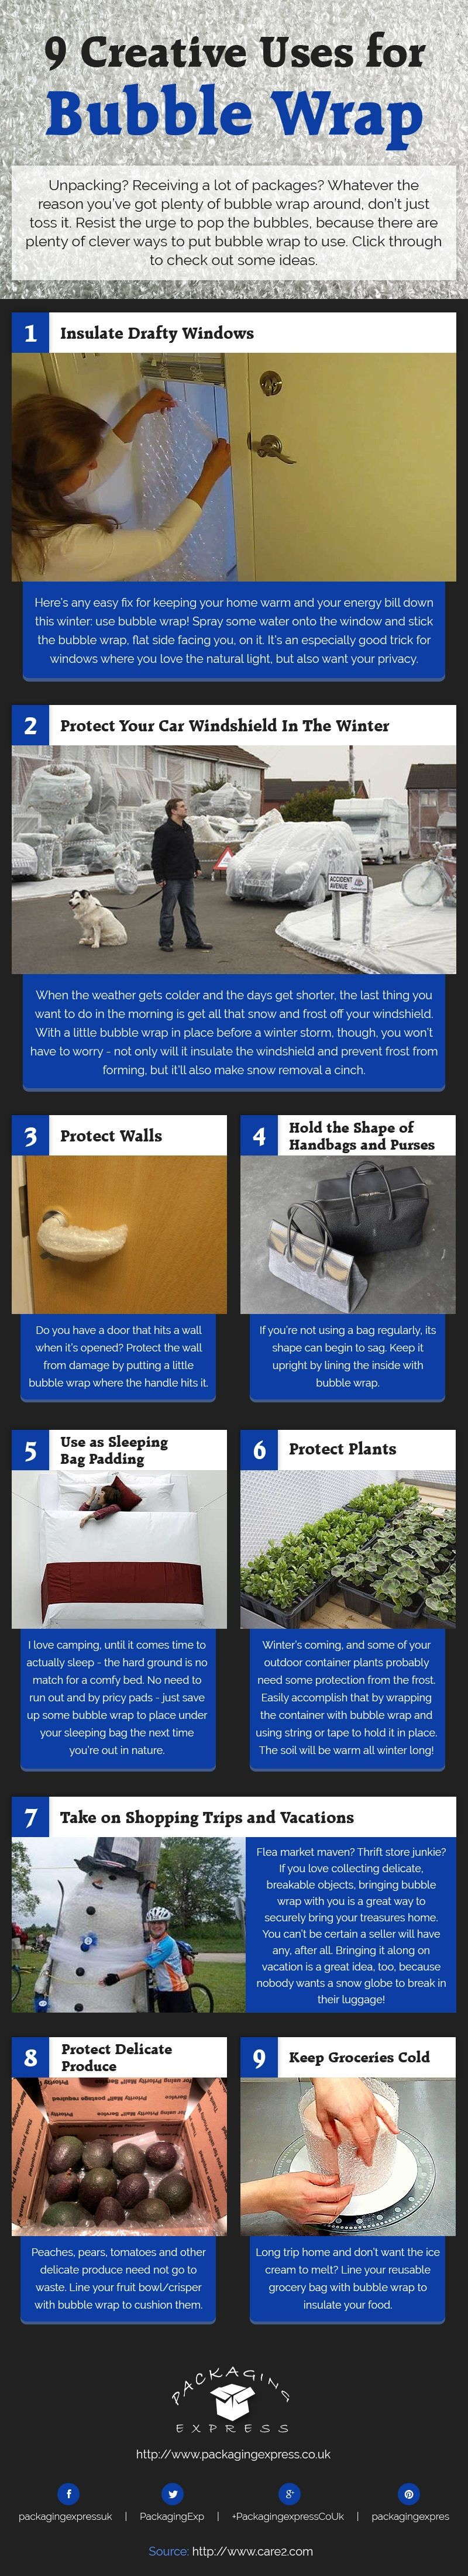 9 Creative Uses Of Bubble Wrap Infographic The Local